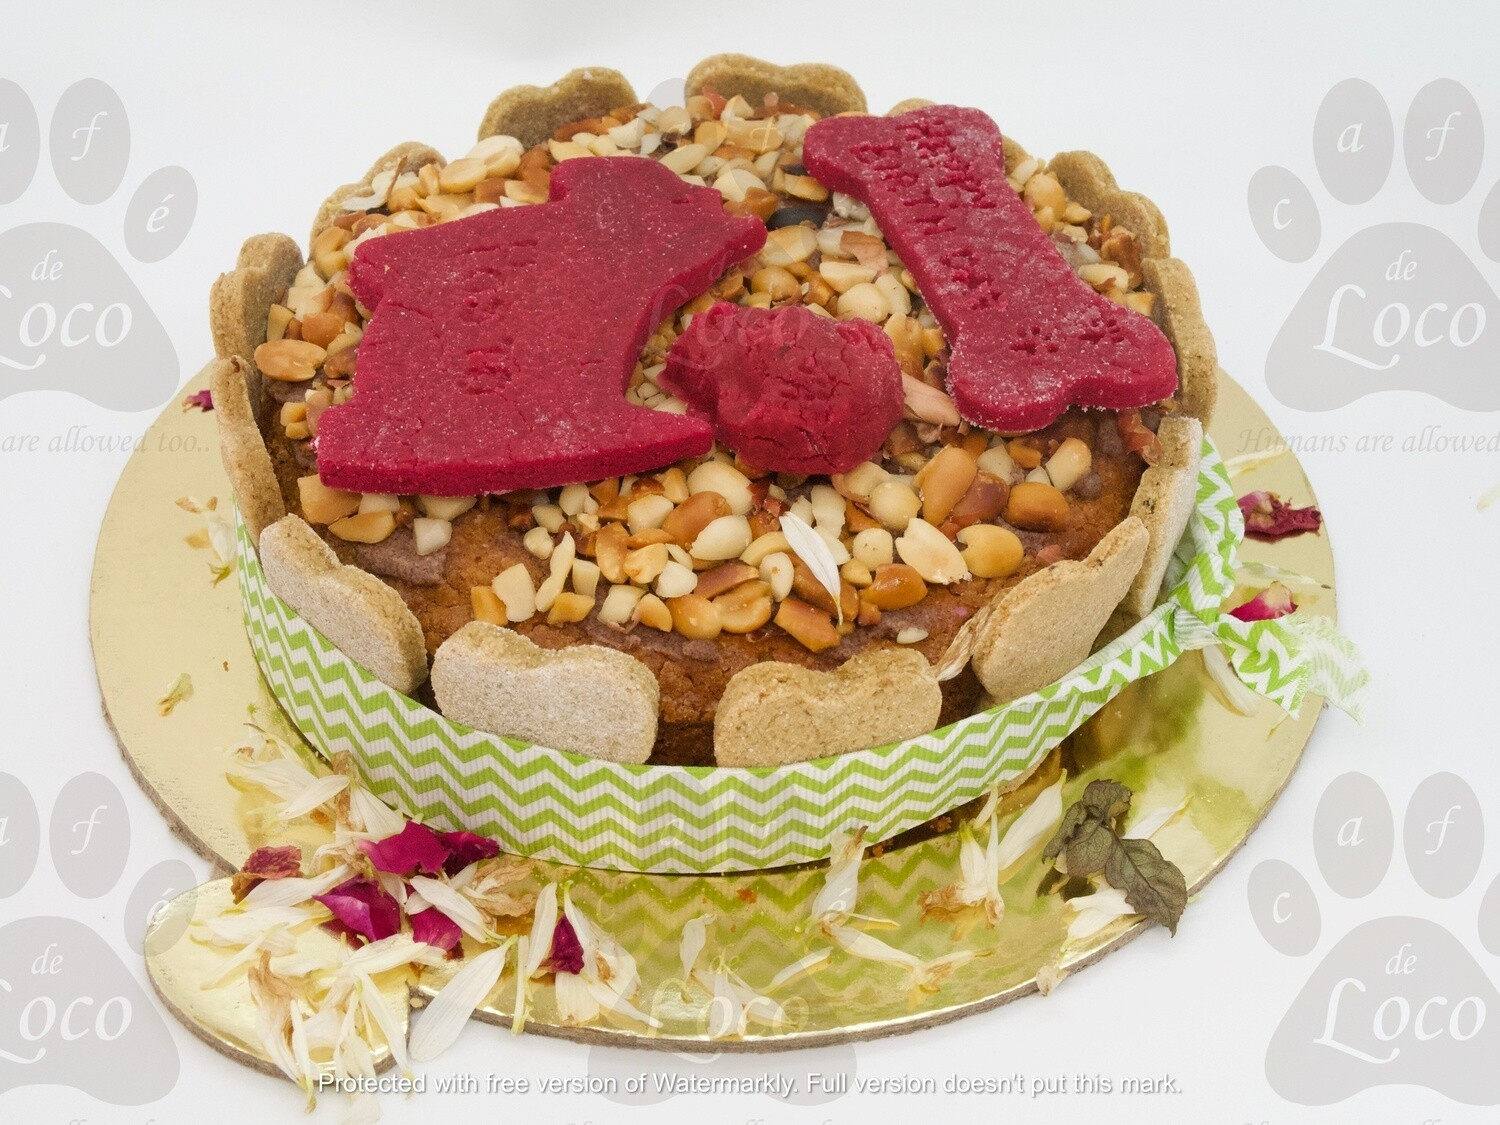 Non Icing cake with top decoration